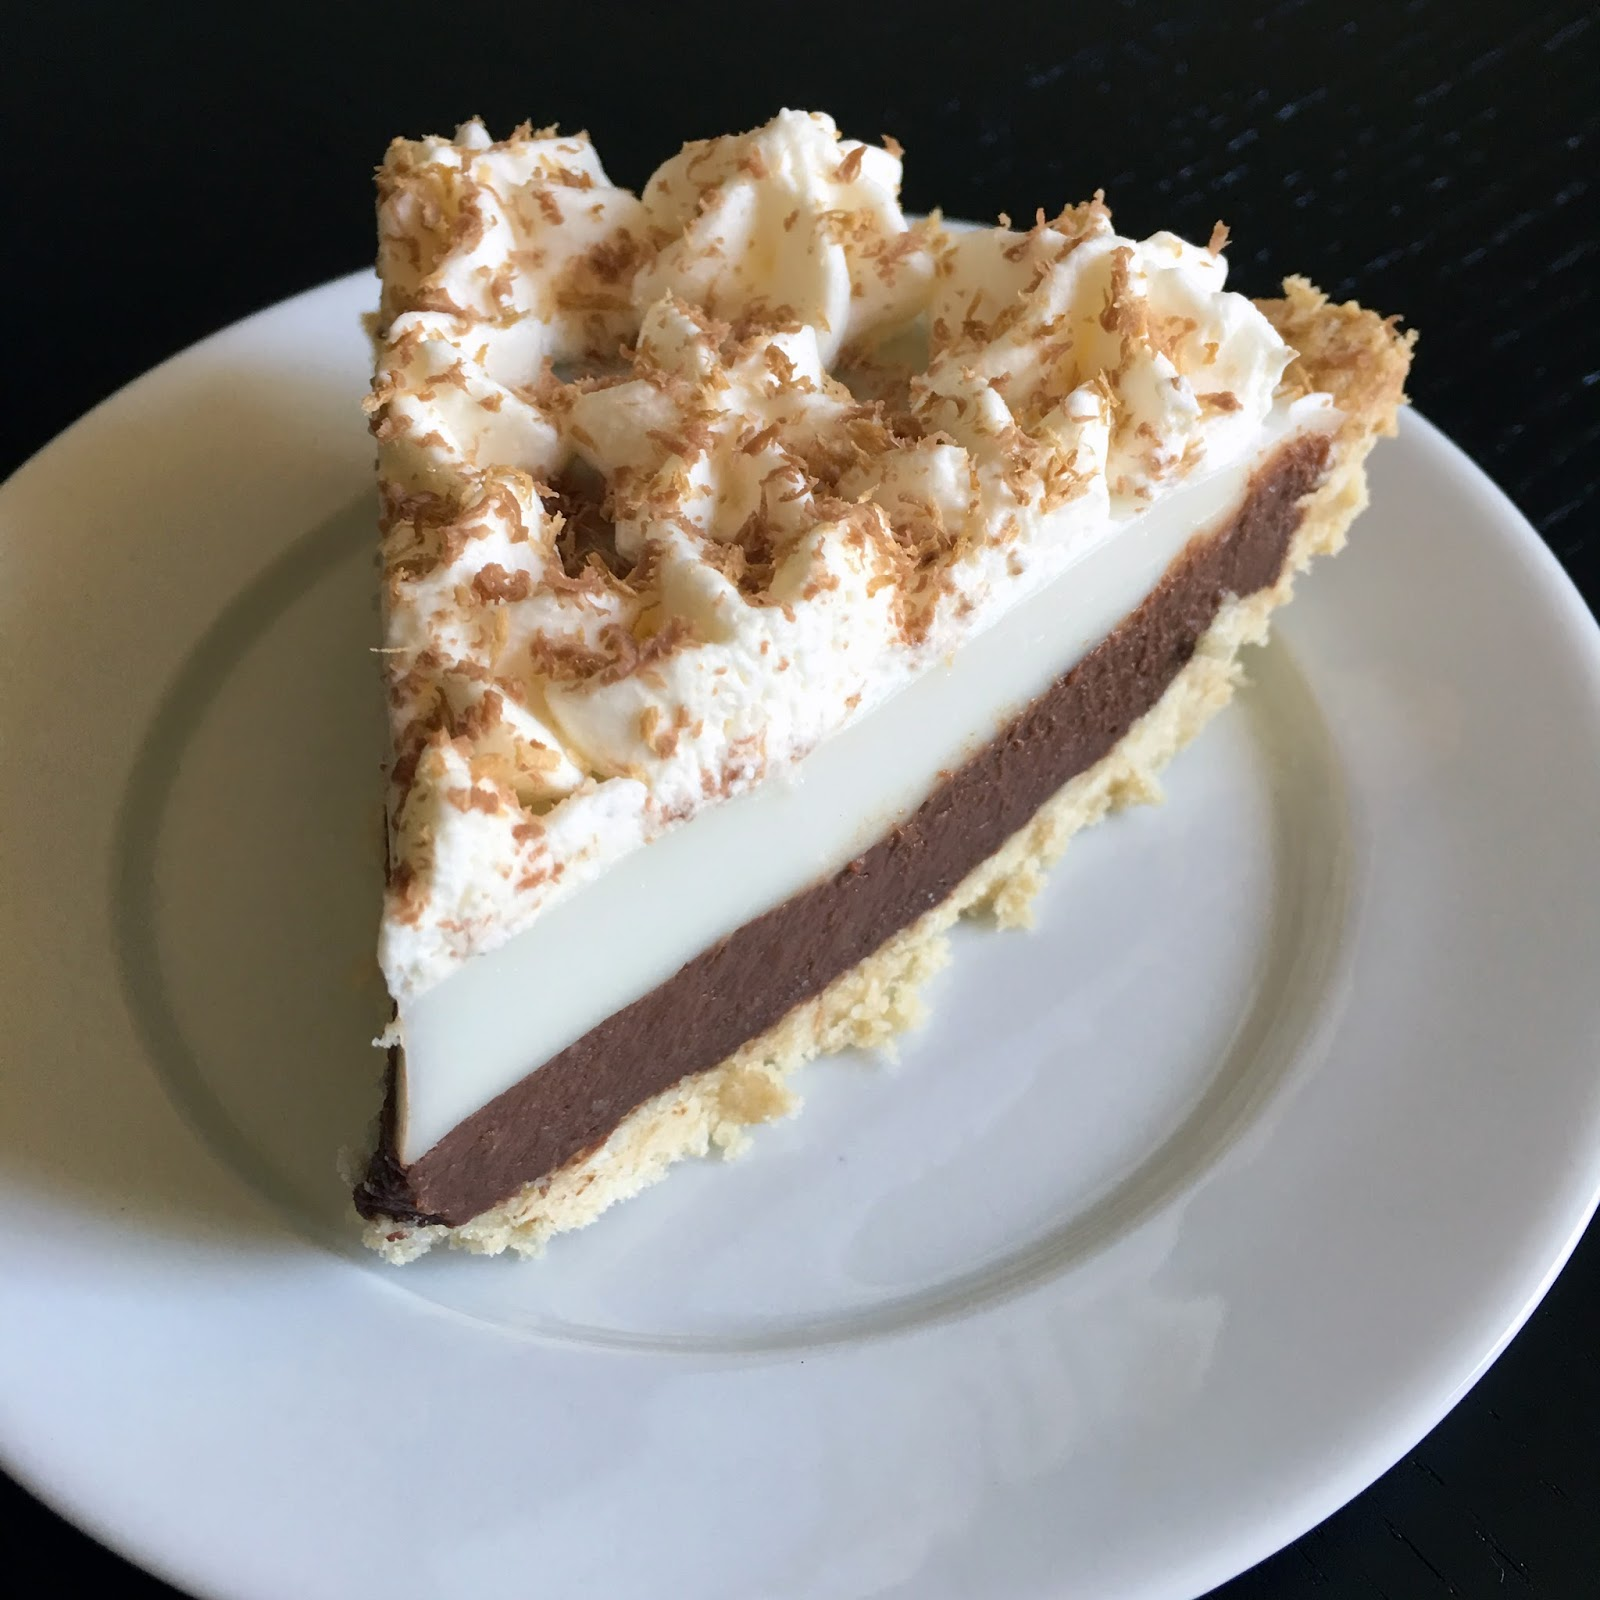 Chocolate Haupia Pie with Toasted Coconut Crust